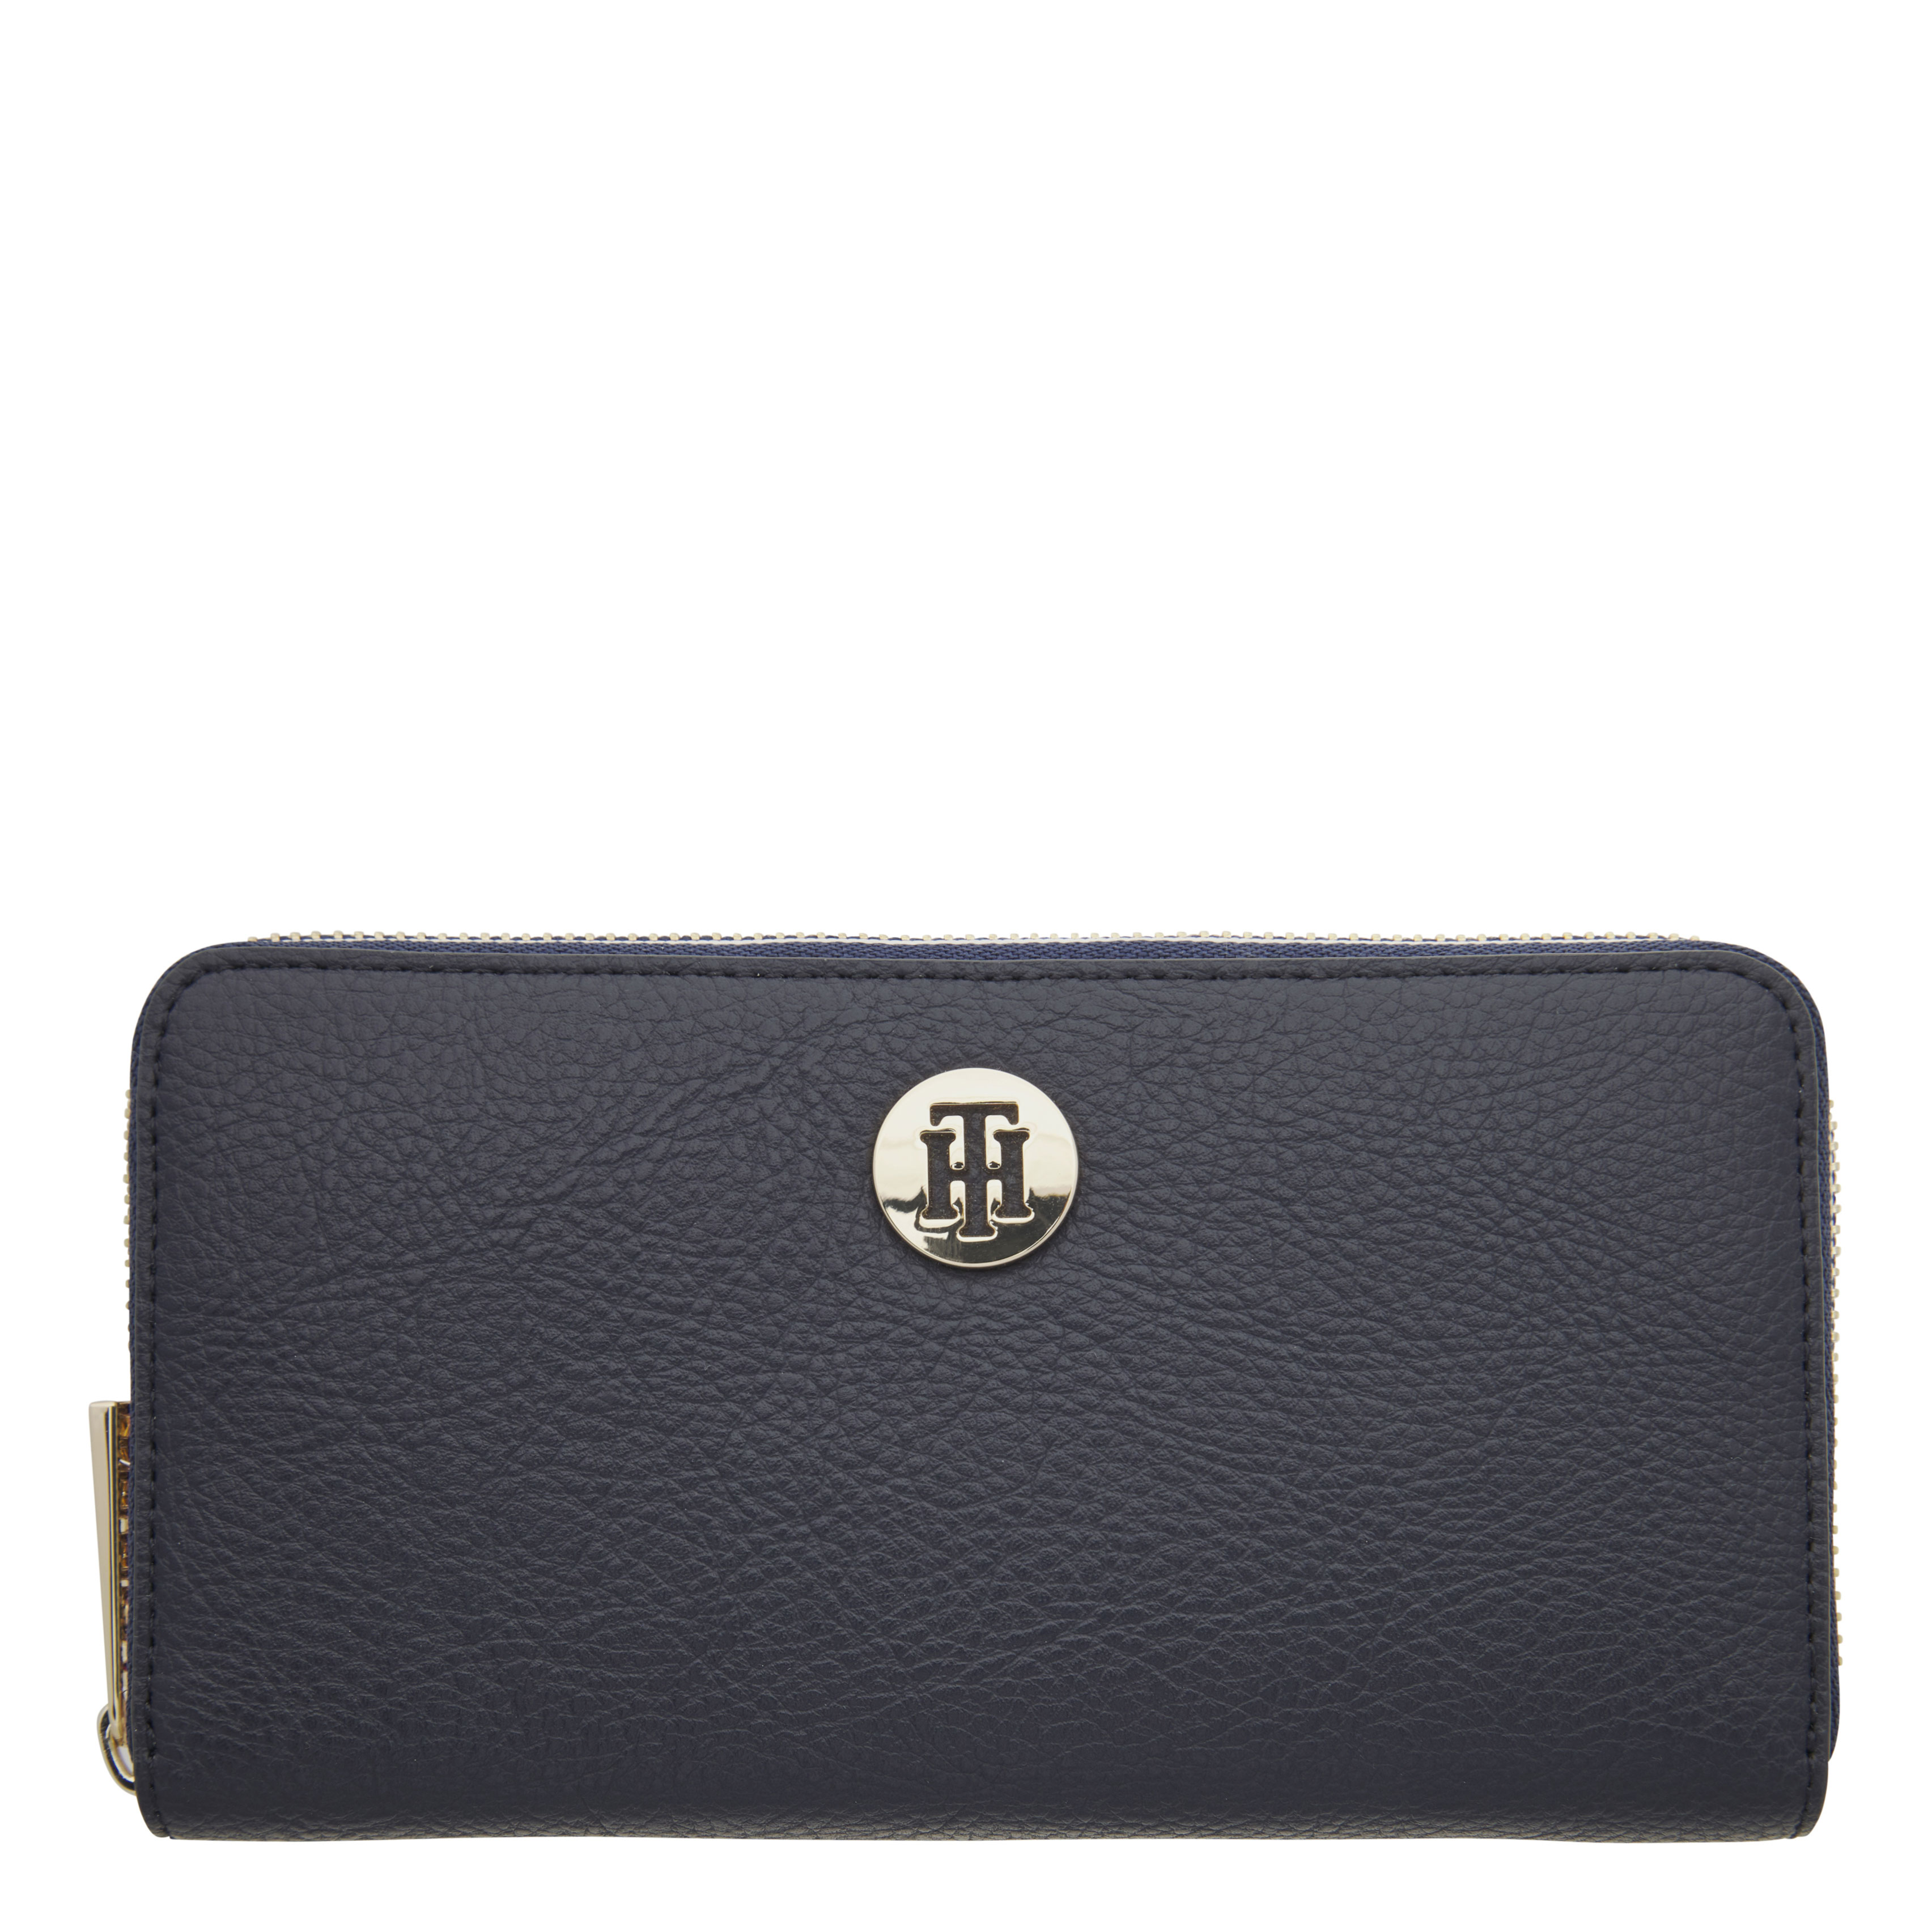 TOMMY HILFIGER Marroquinería Carteras Corporate AW0AW08489-CJM